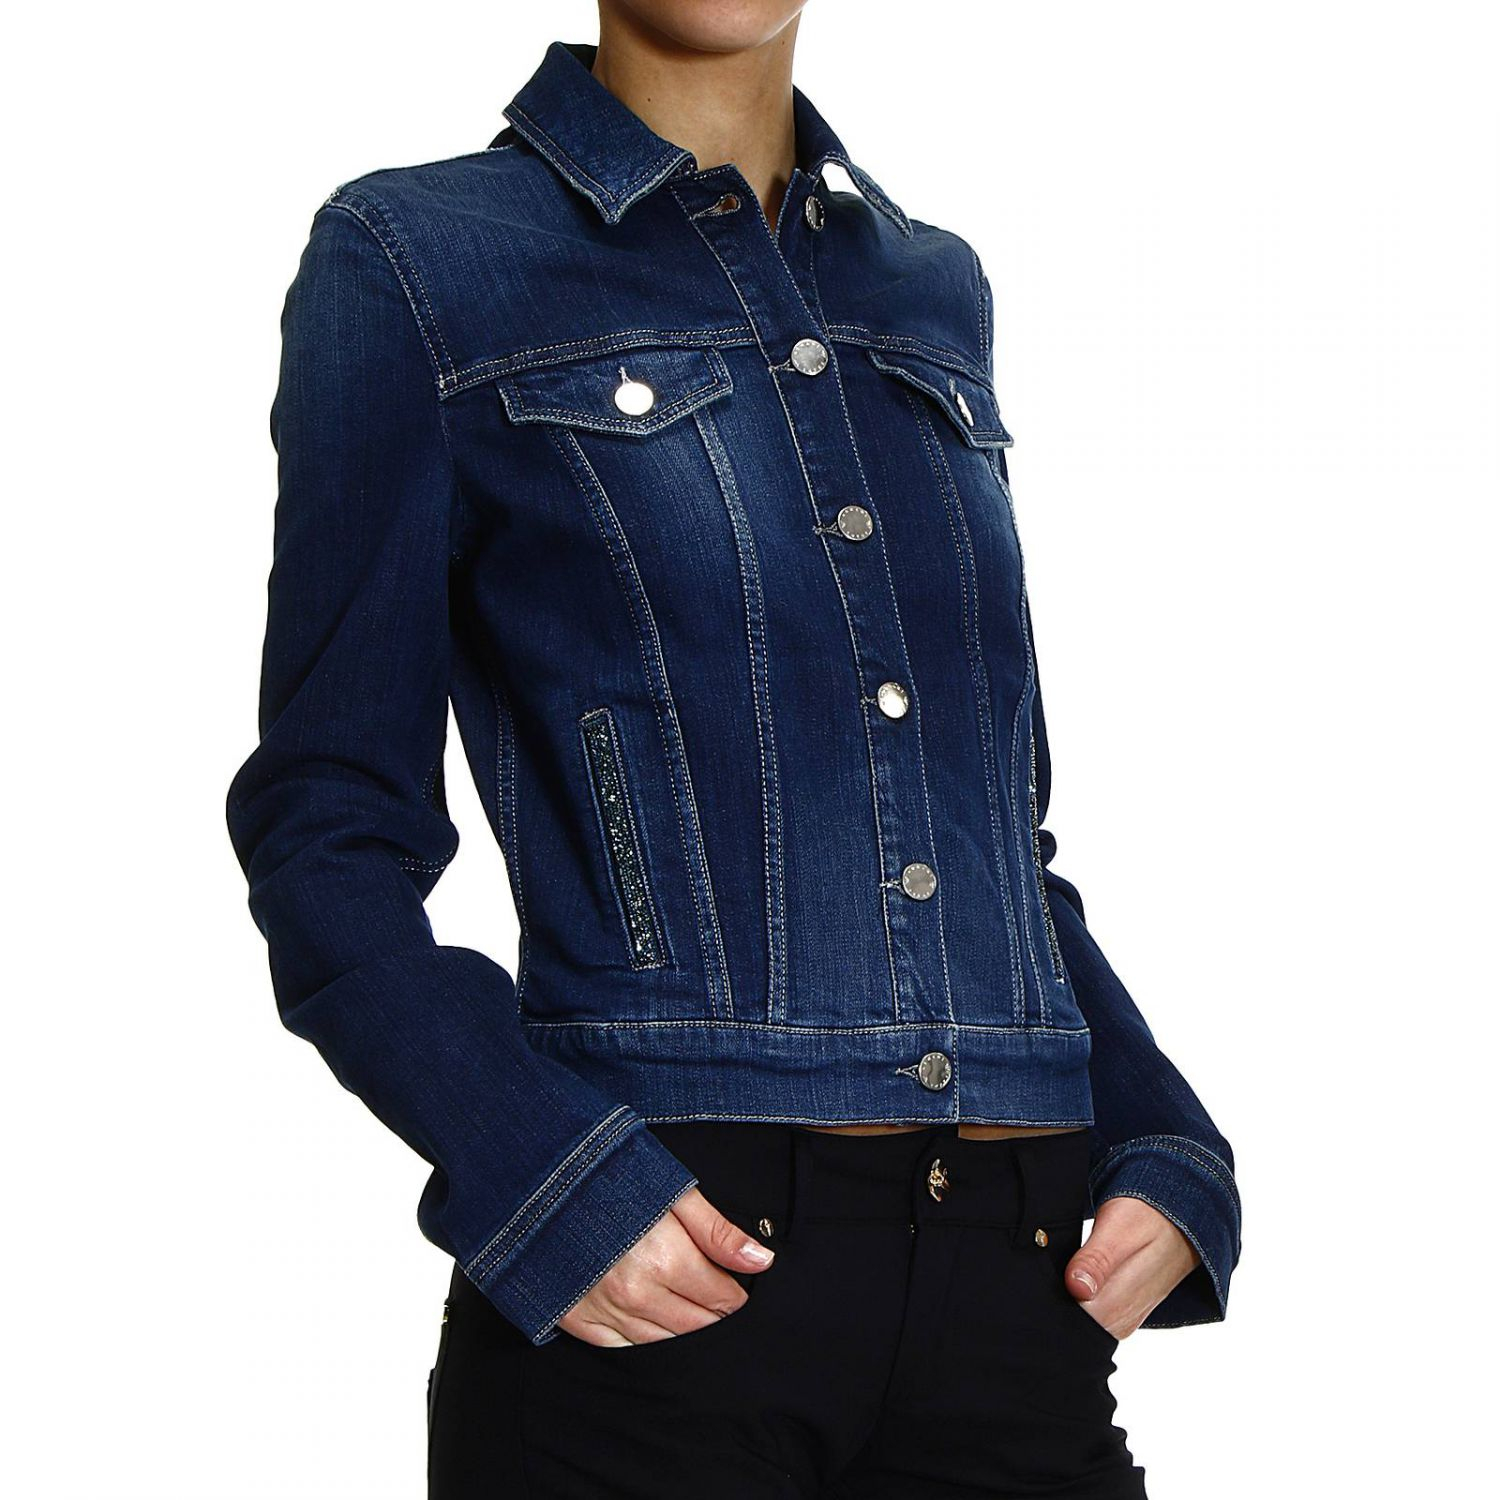 982eee9340 Lyst - Armani Jeans Jacket Denim With Strass in Blue